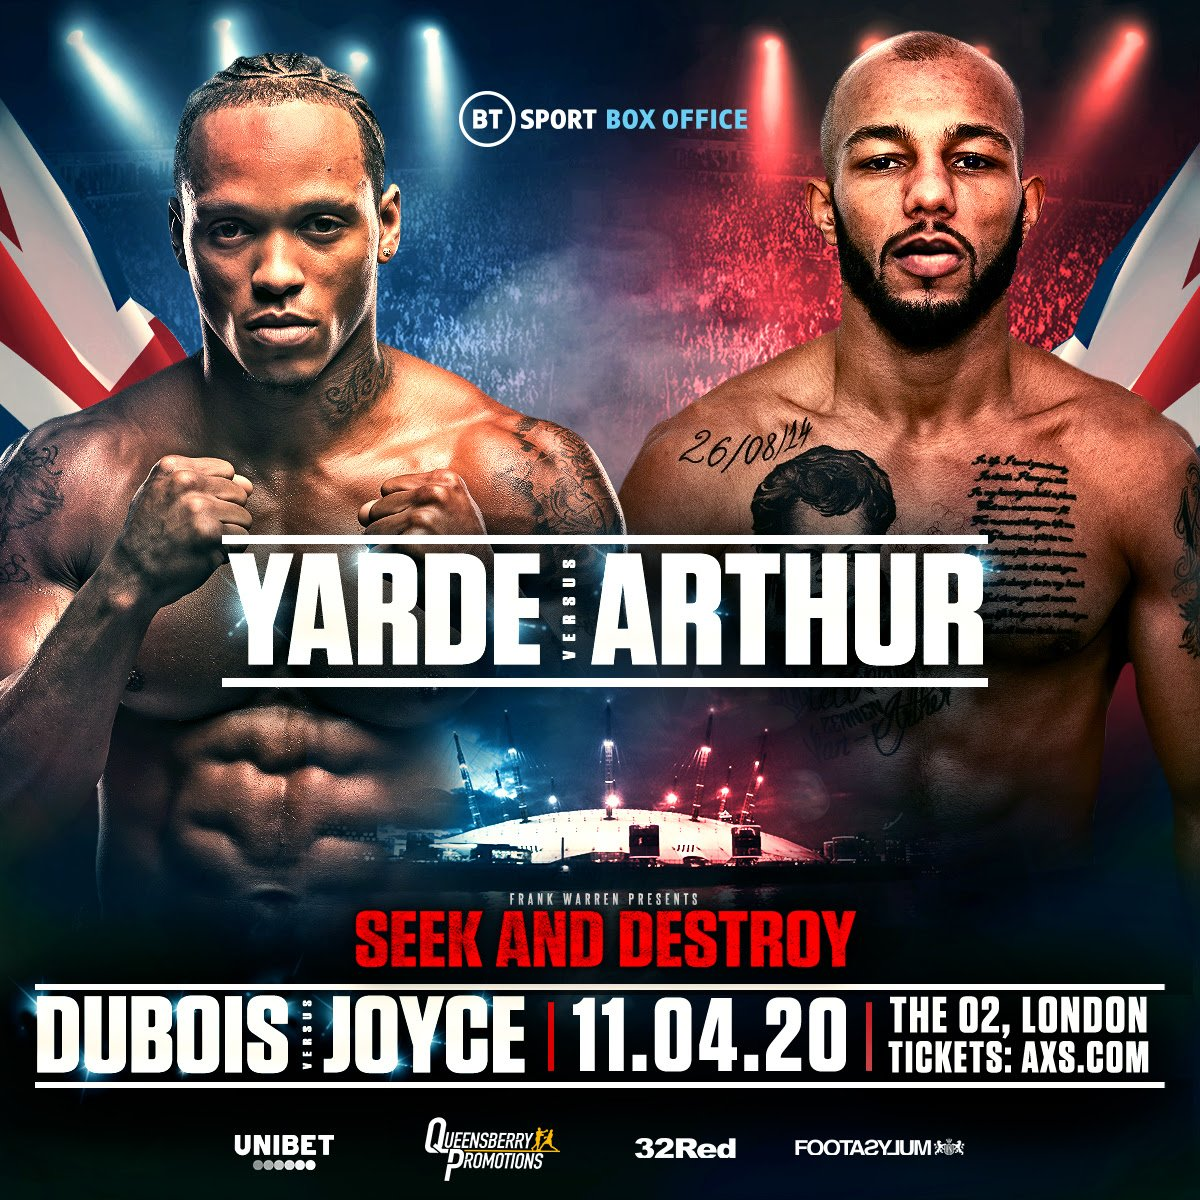 Daniel Dubois - THE EAGERLY ANTICIPATED 'Seek and Destroy' showdown between Daniel Dubois and Joe Joyce at the o2 Arena on April 11 now has a blockbuster chief support in place with Anthony Yarde set to take on the unbeaten Lyndon Arthur.